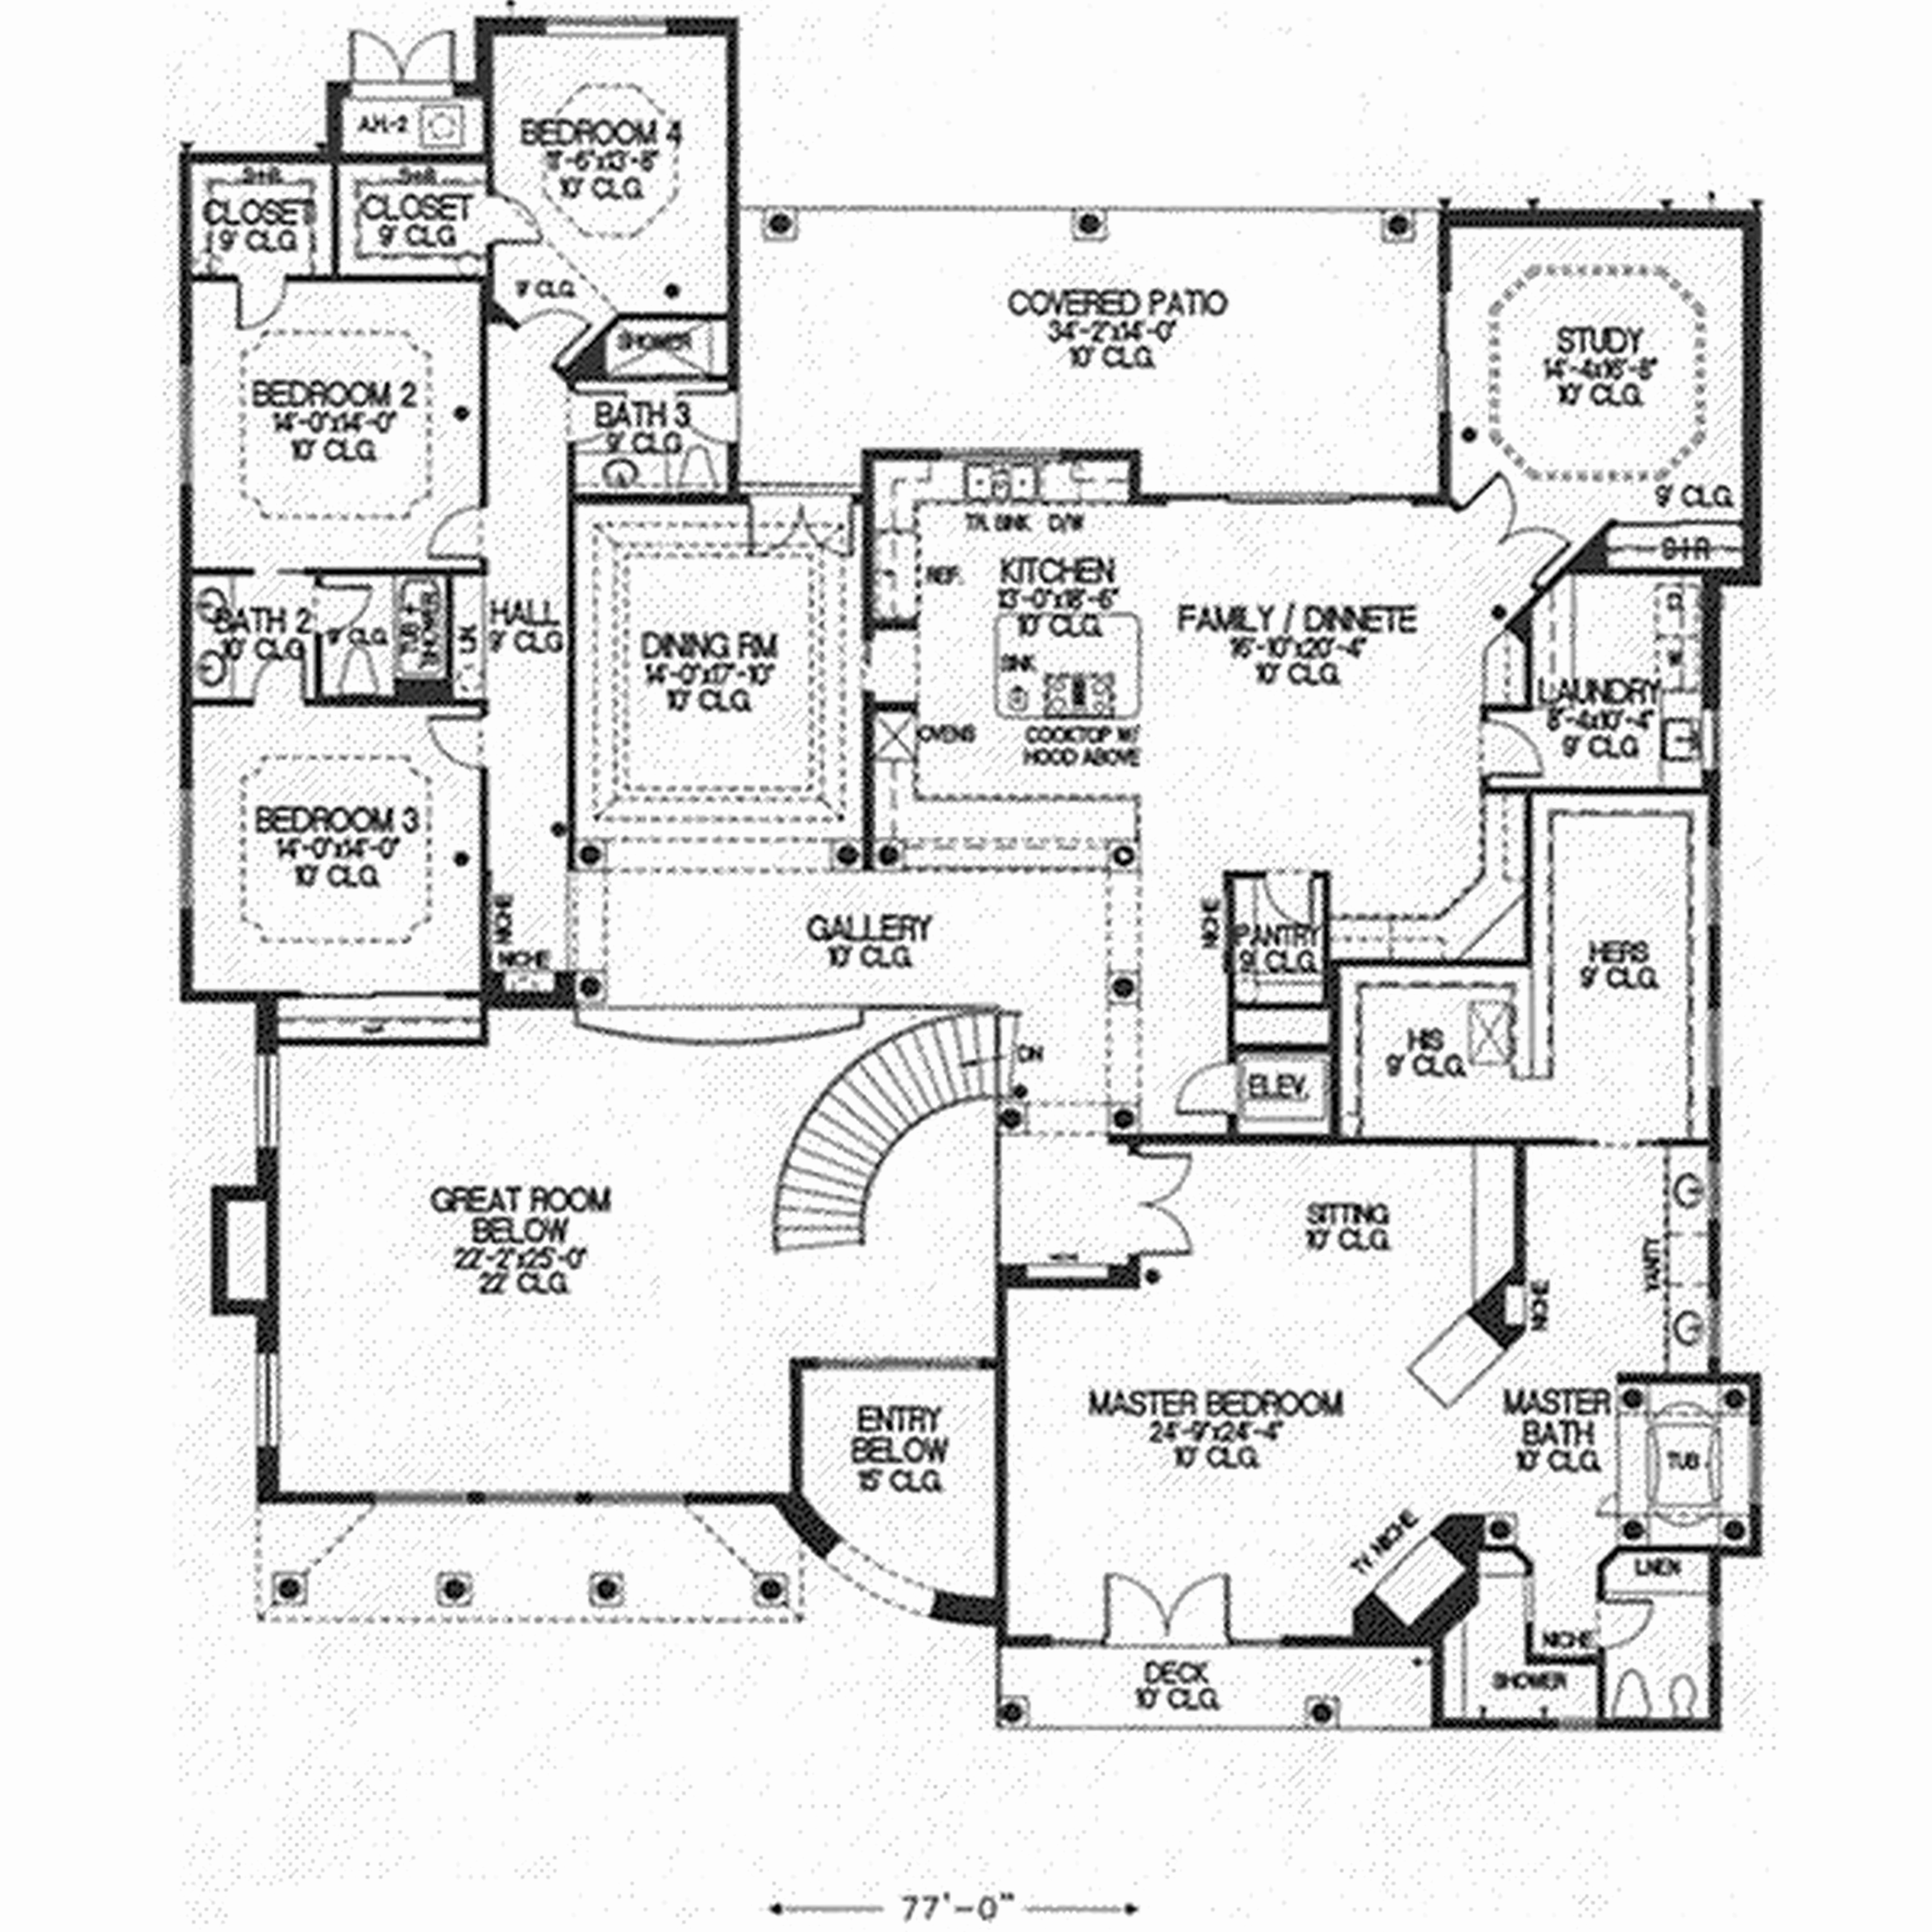 5000x5000 Apartments How To Draw A Floor Plan Scale Steps Pictures Drawing